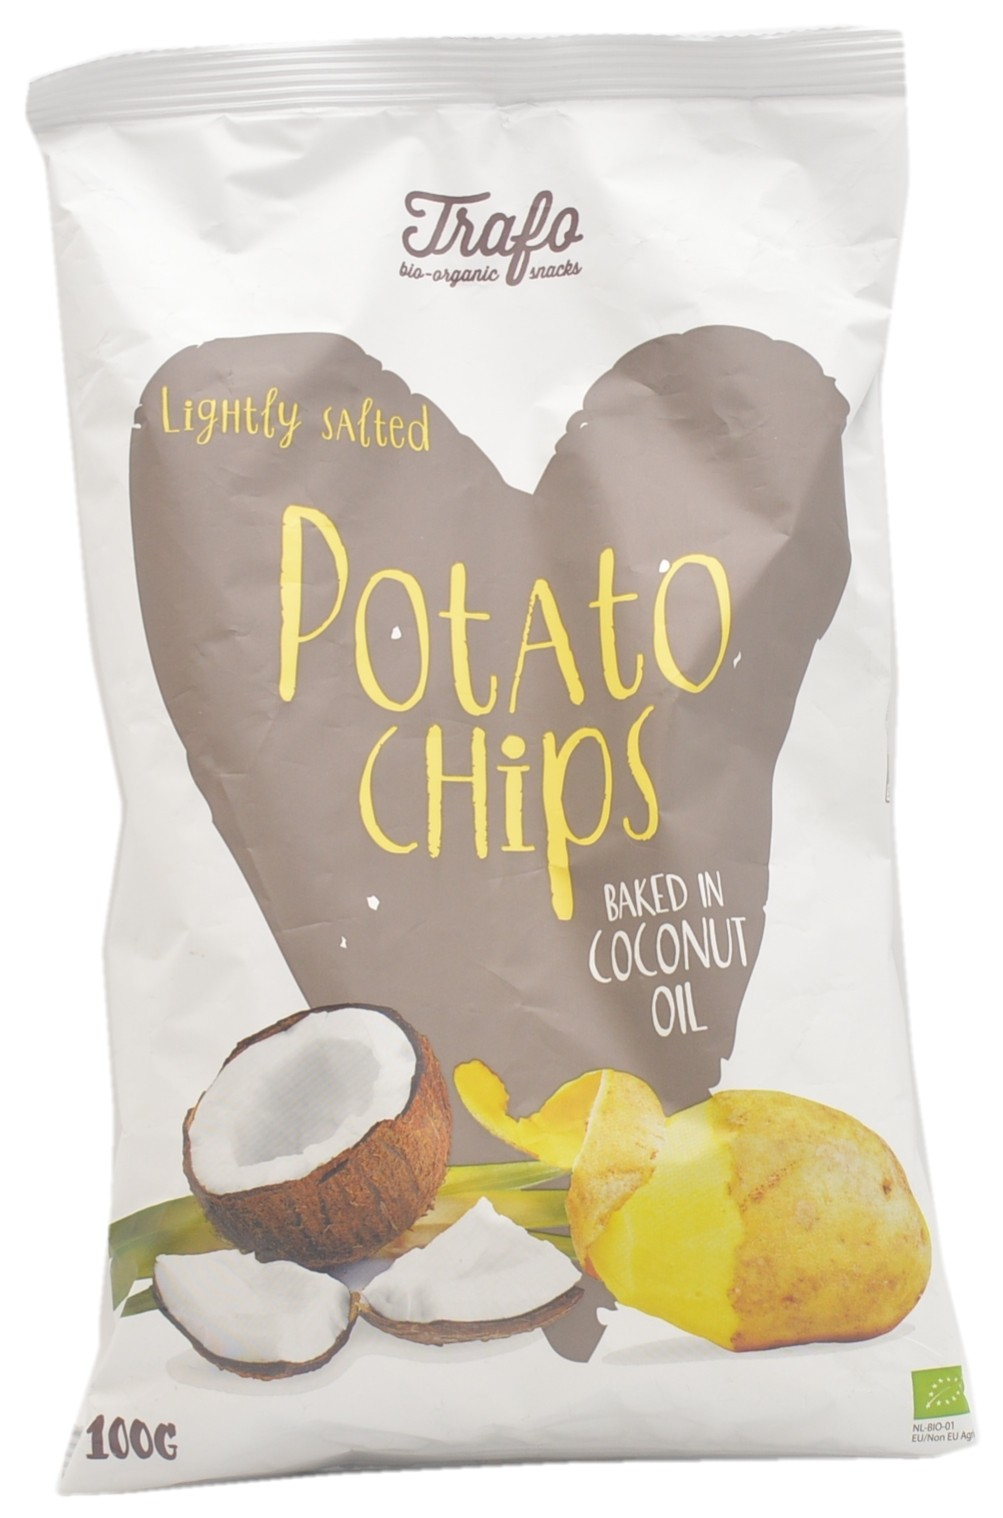 Lightly Salted Potato Chips Baked in Coconut Oil